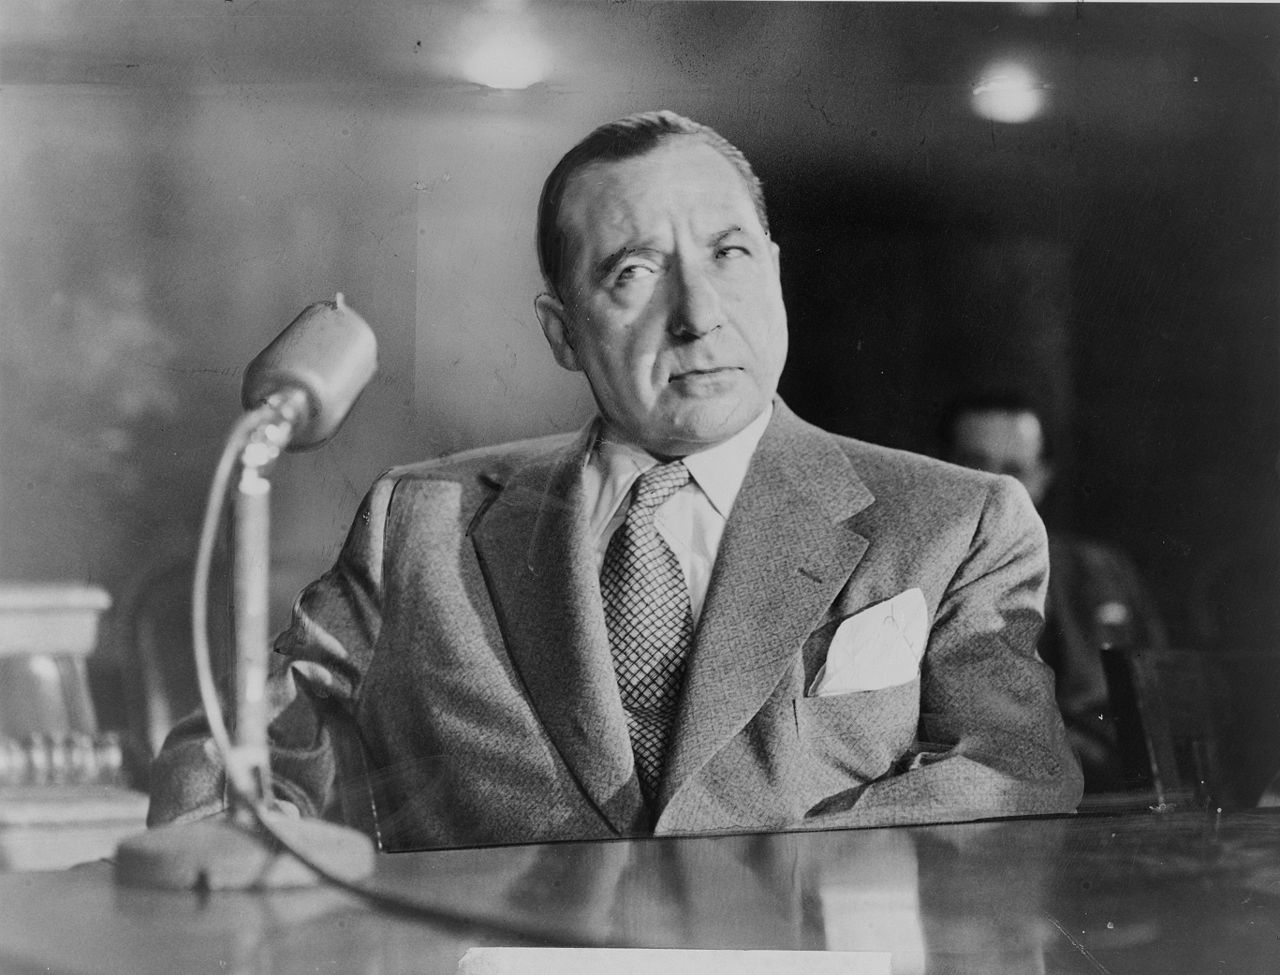 1280px-Frank_Costello_-_Kefauver_Committee